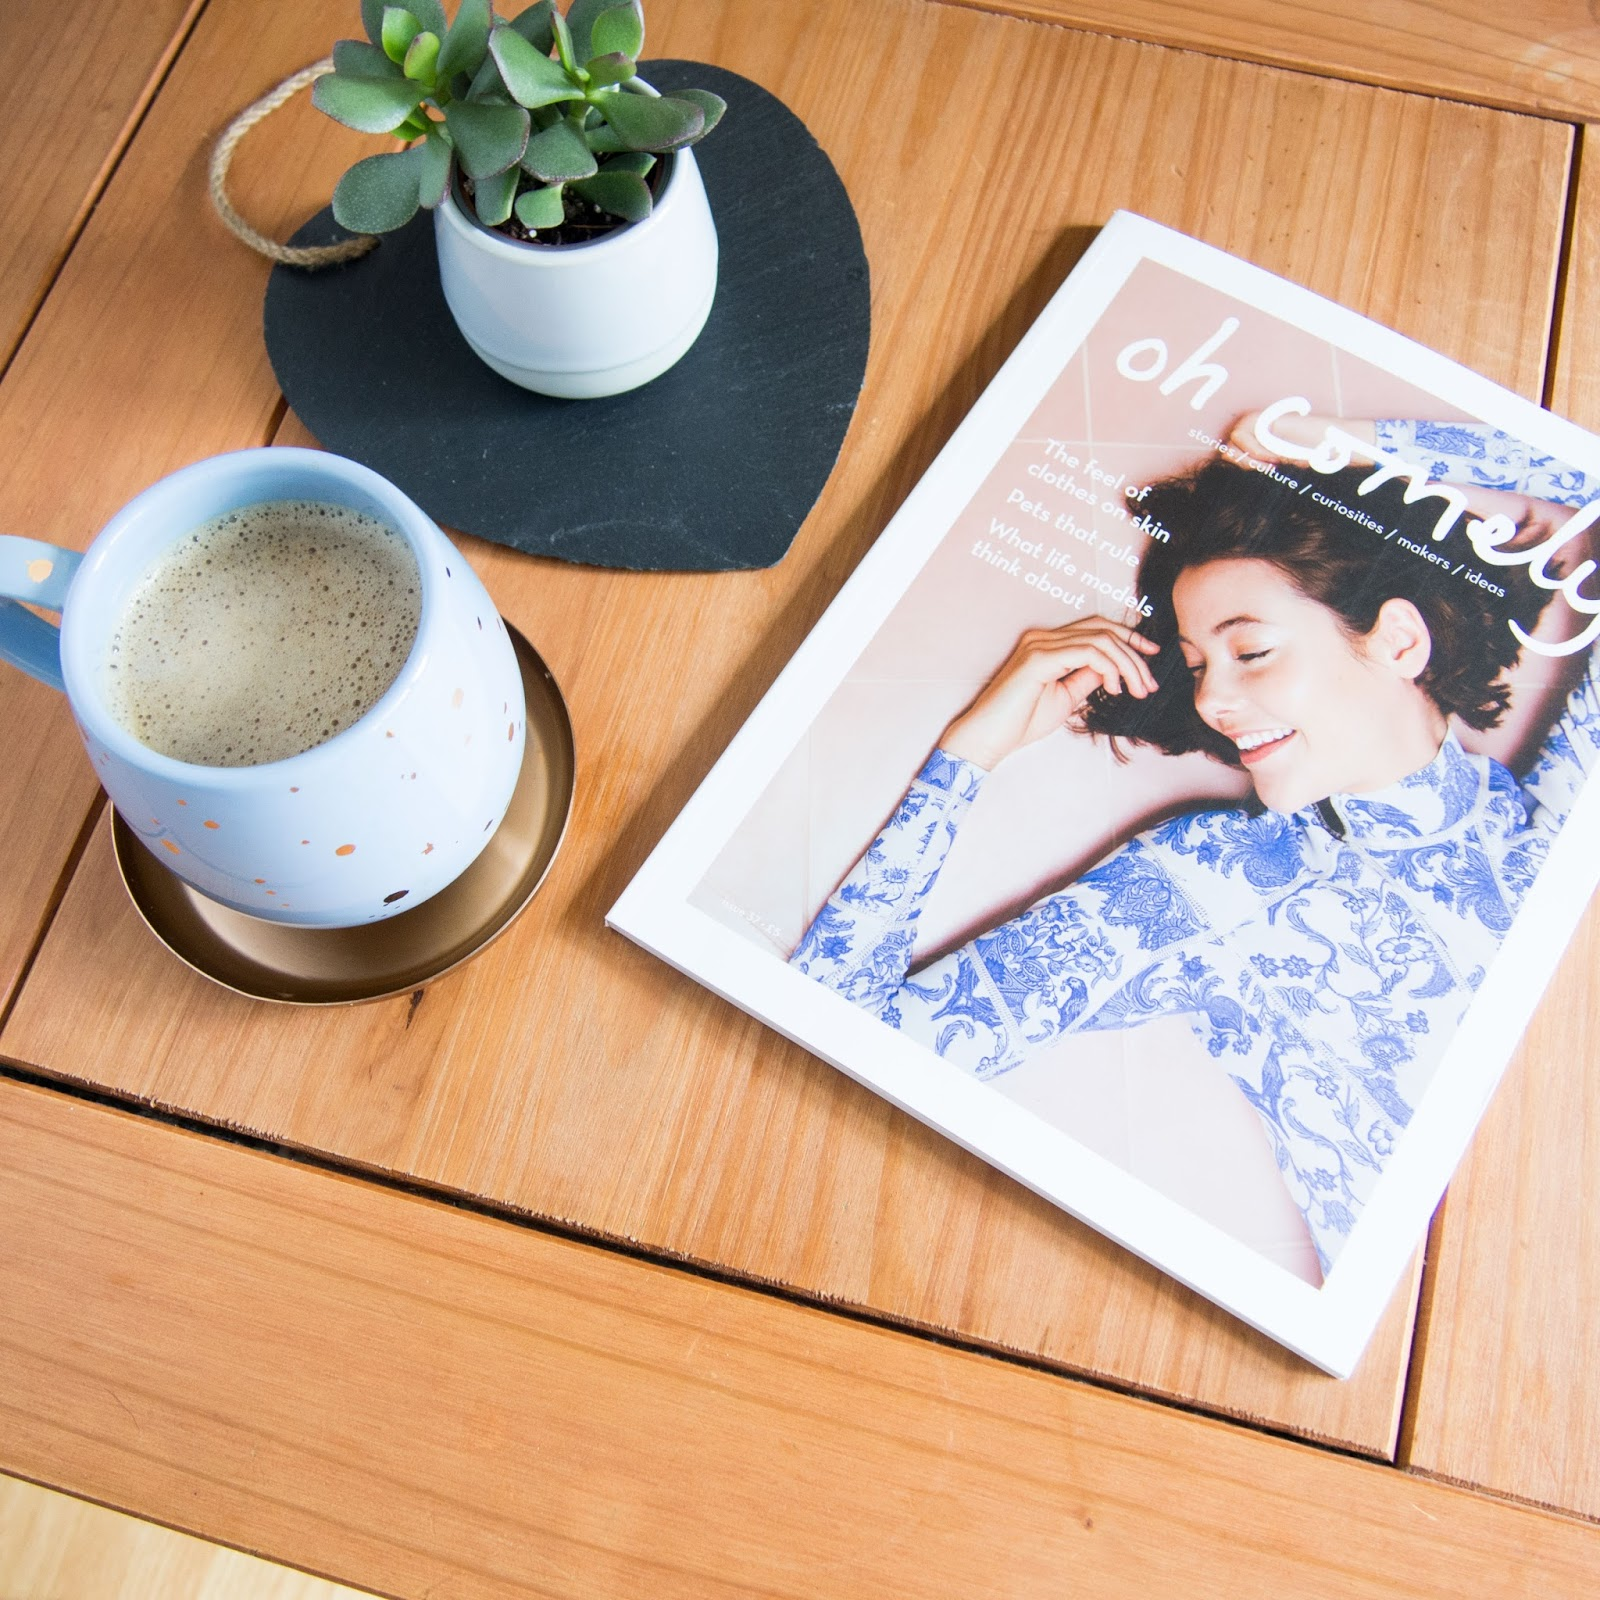 Coffee Table, Oh Comely, TK Maxx Mug, Succulent, Katie Writes Blog, Katie Writes,